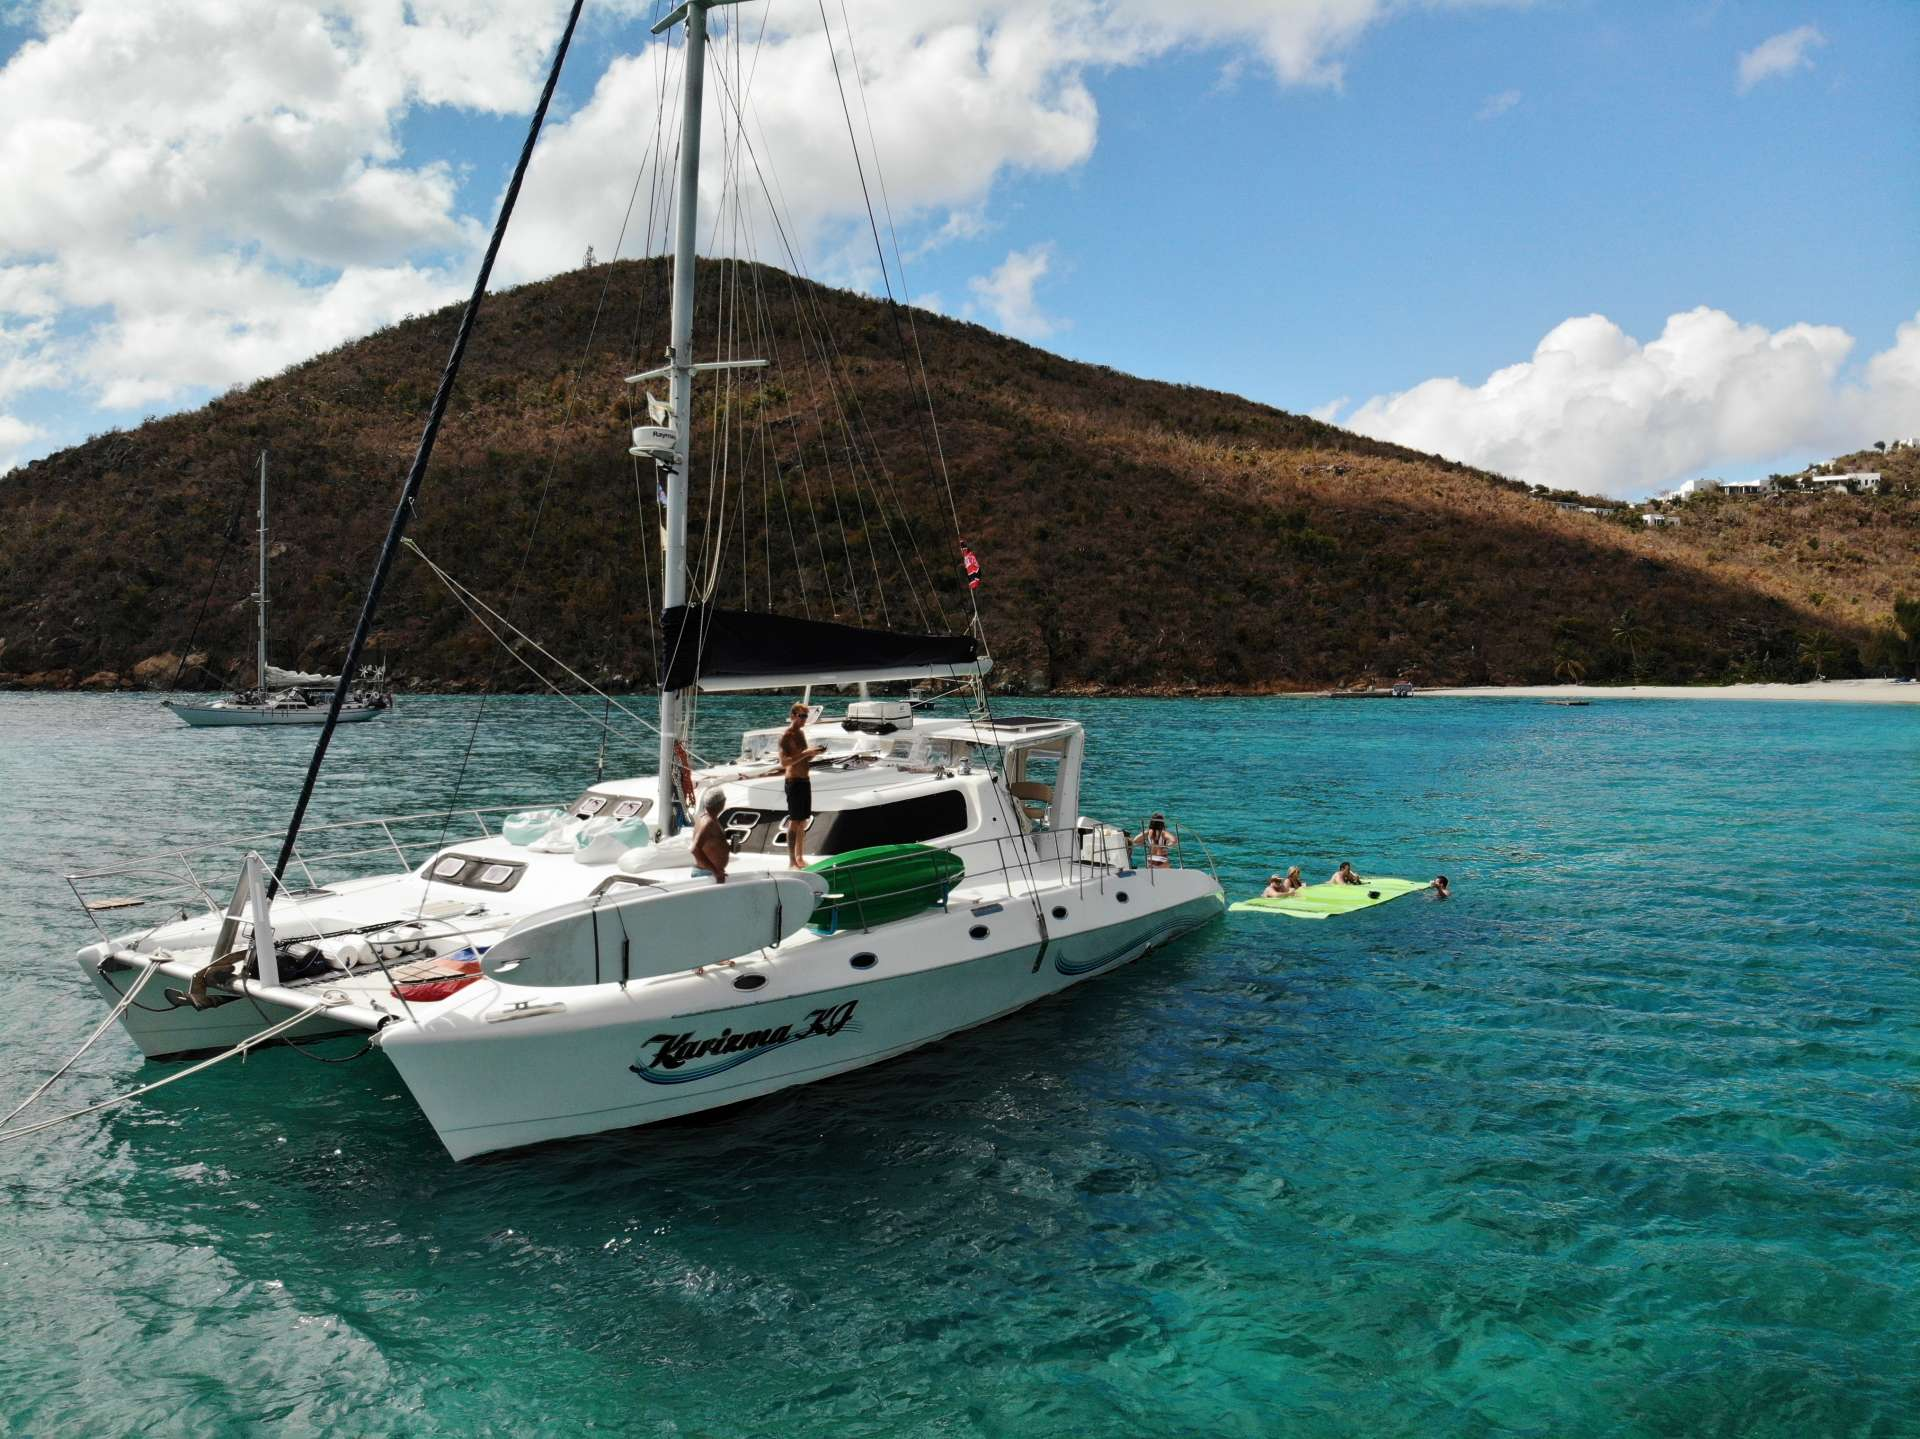 Charter with KARIZMA on compassyachtcharters.com